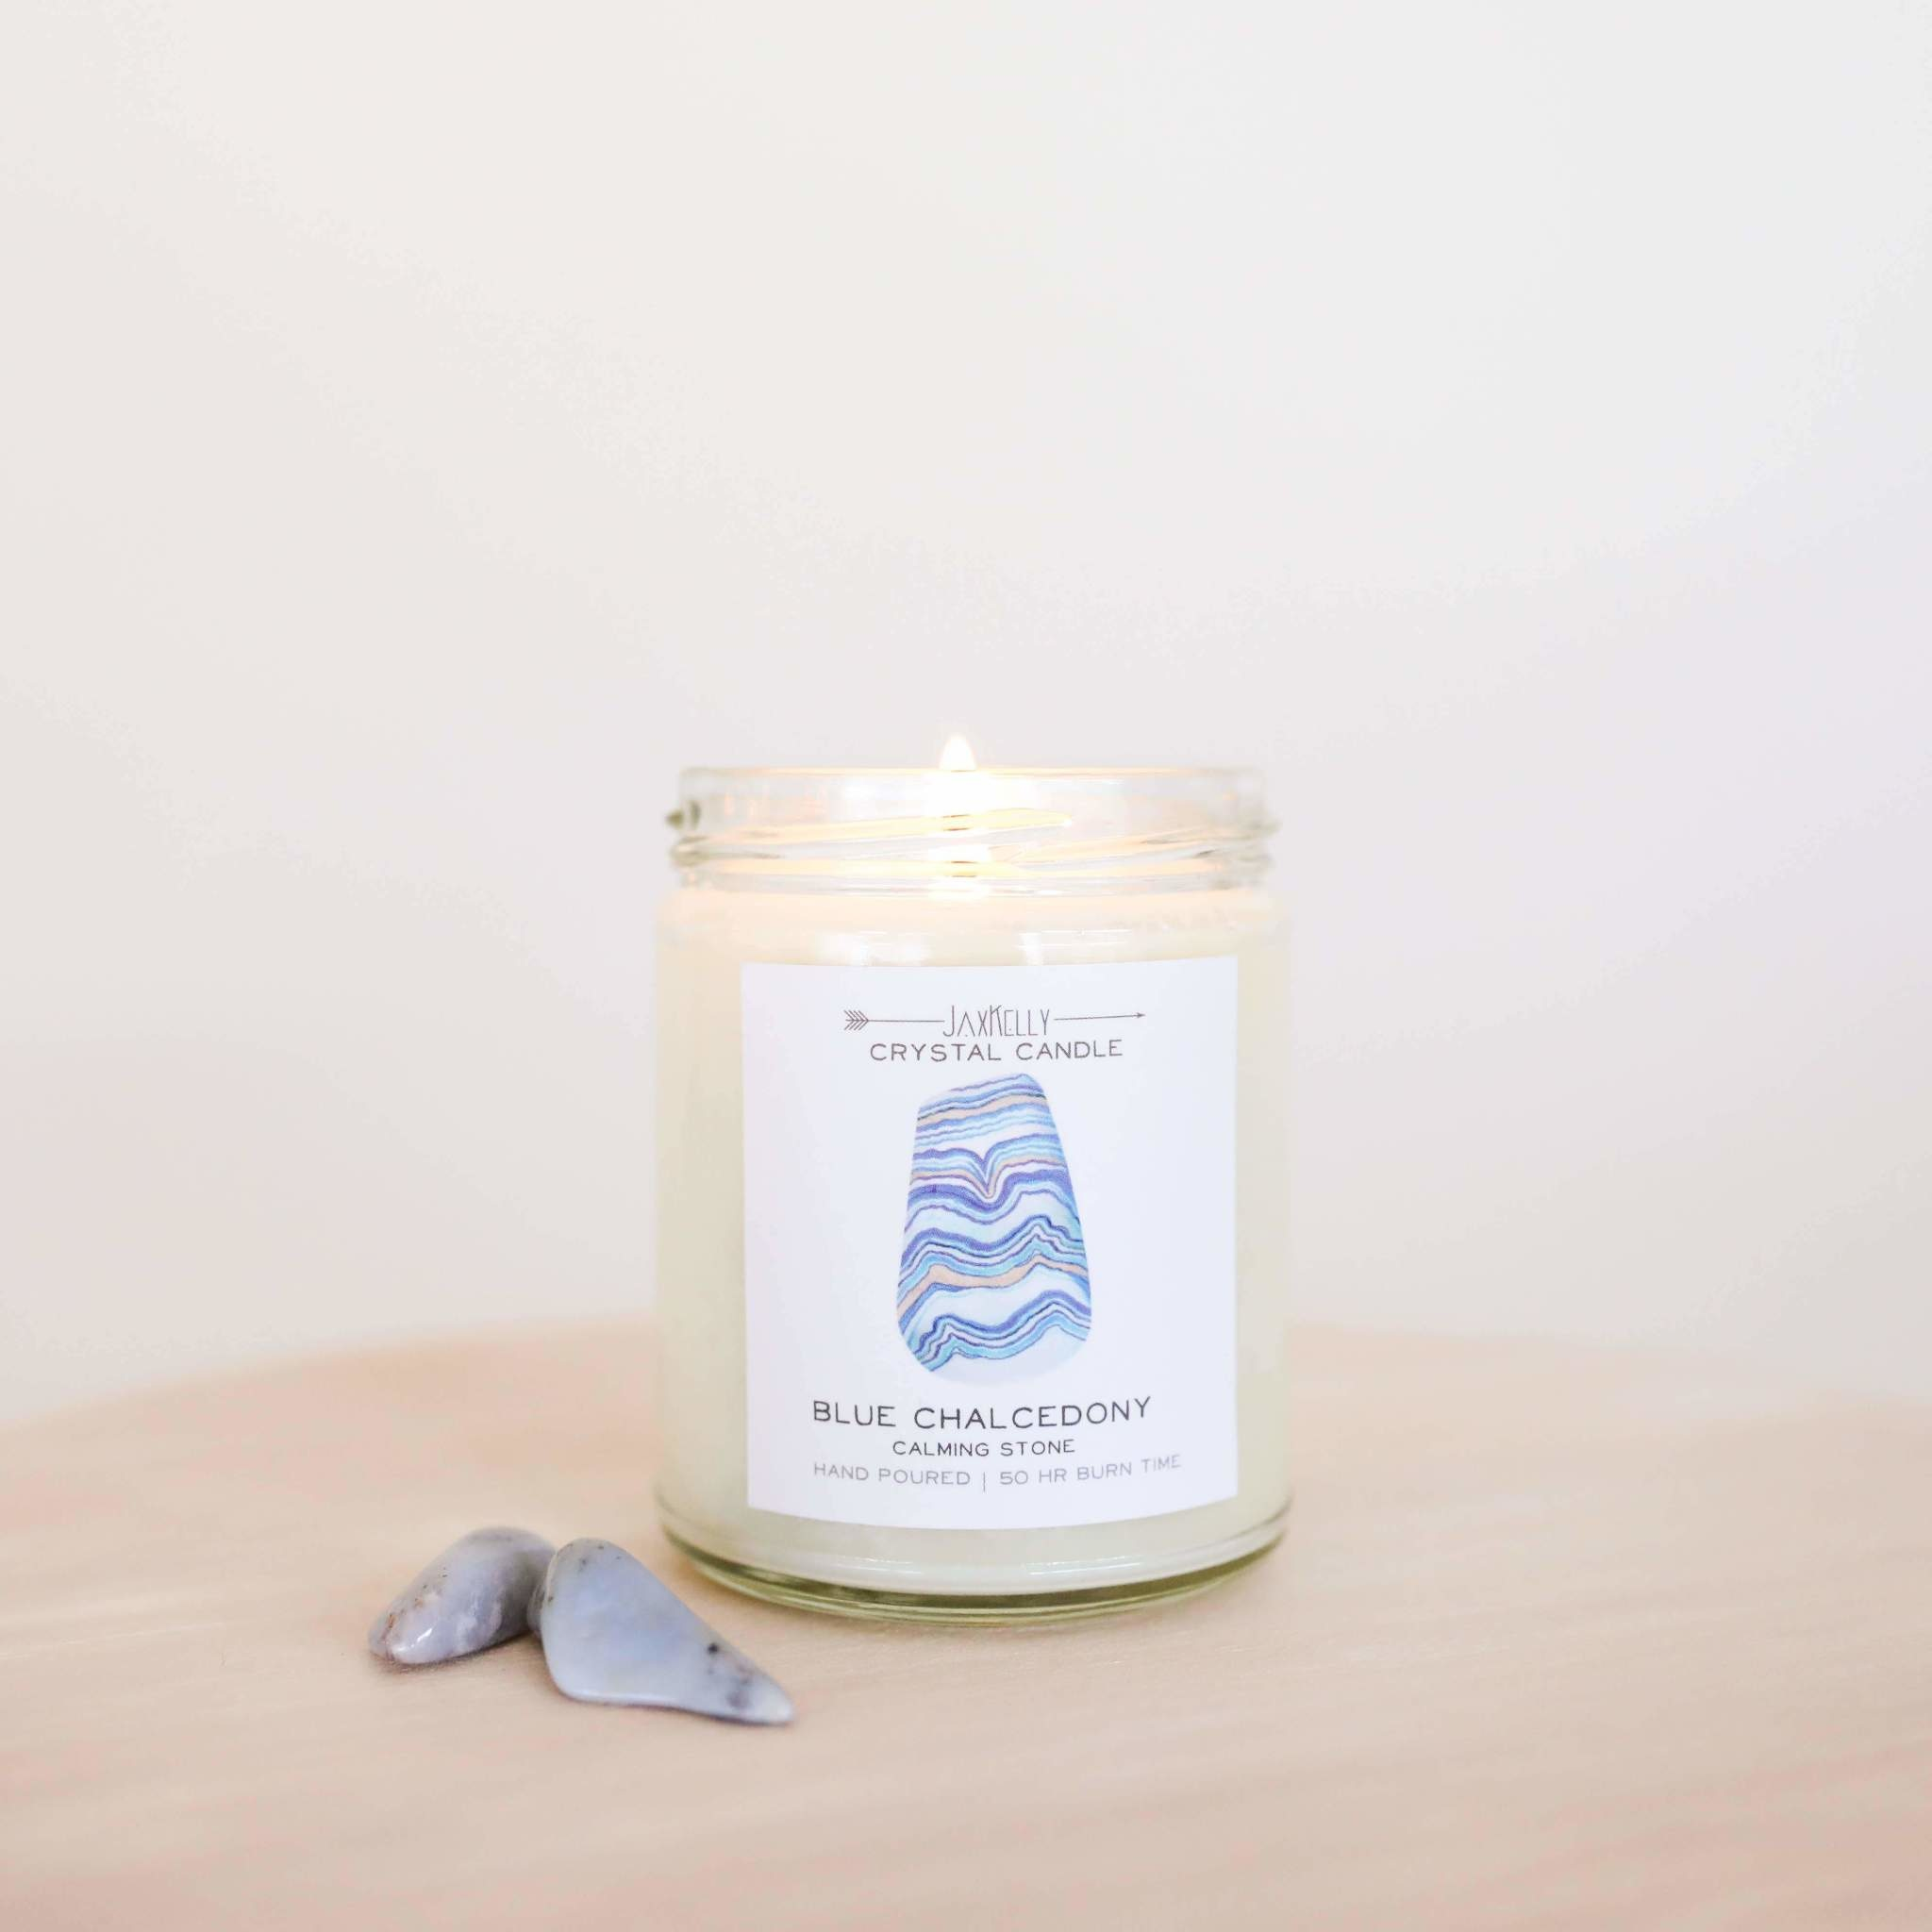 Blue Chalcedony Candle - Calming